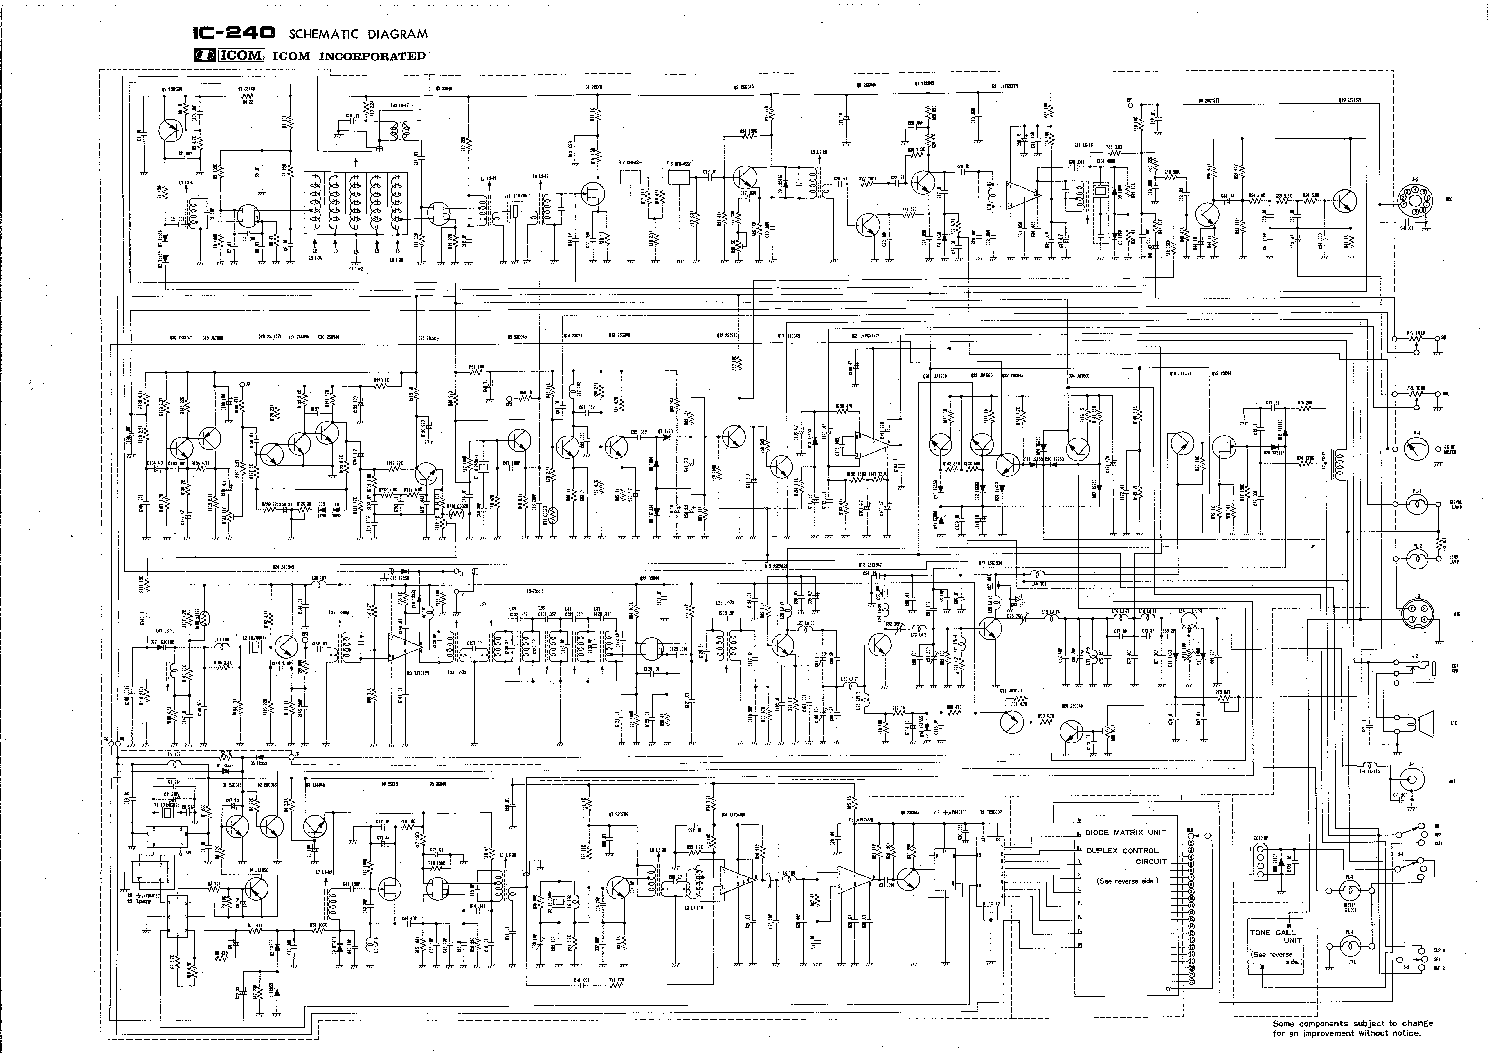 icom ic 240 schematic service manual download schematics eeprom rh elektrotanya com ic 4017 schematic diagram ic 4558 schematic diagram